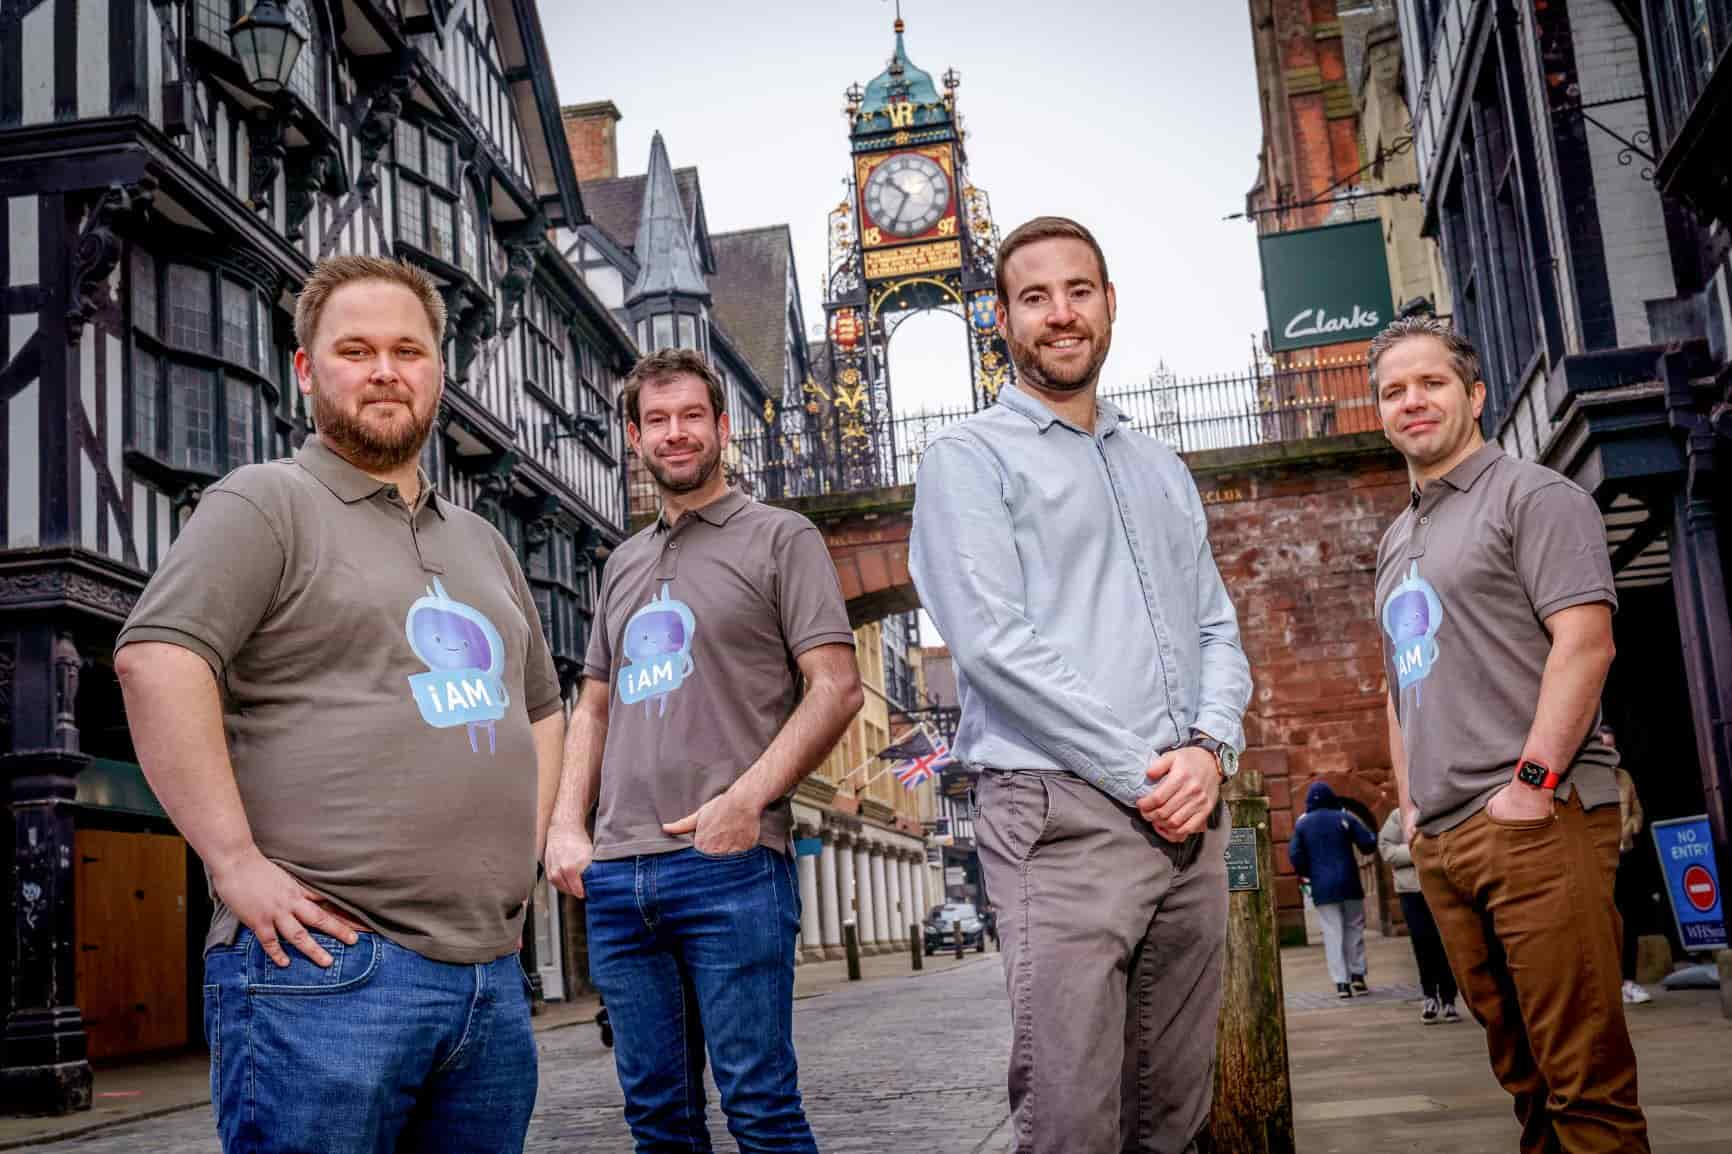 iAM Compliant secures £1 million Seed investment from Maven